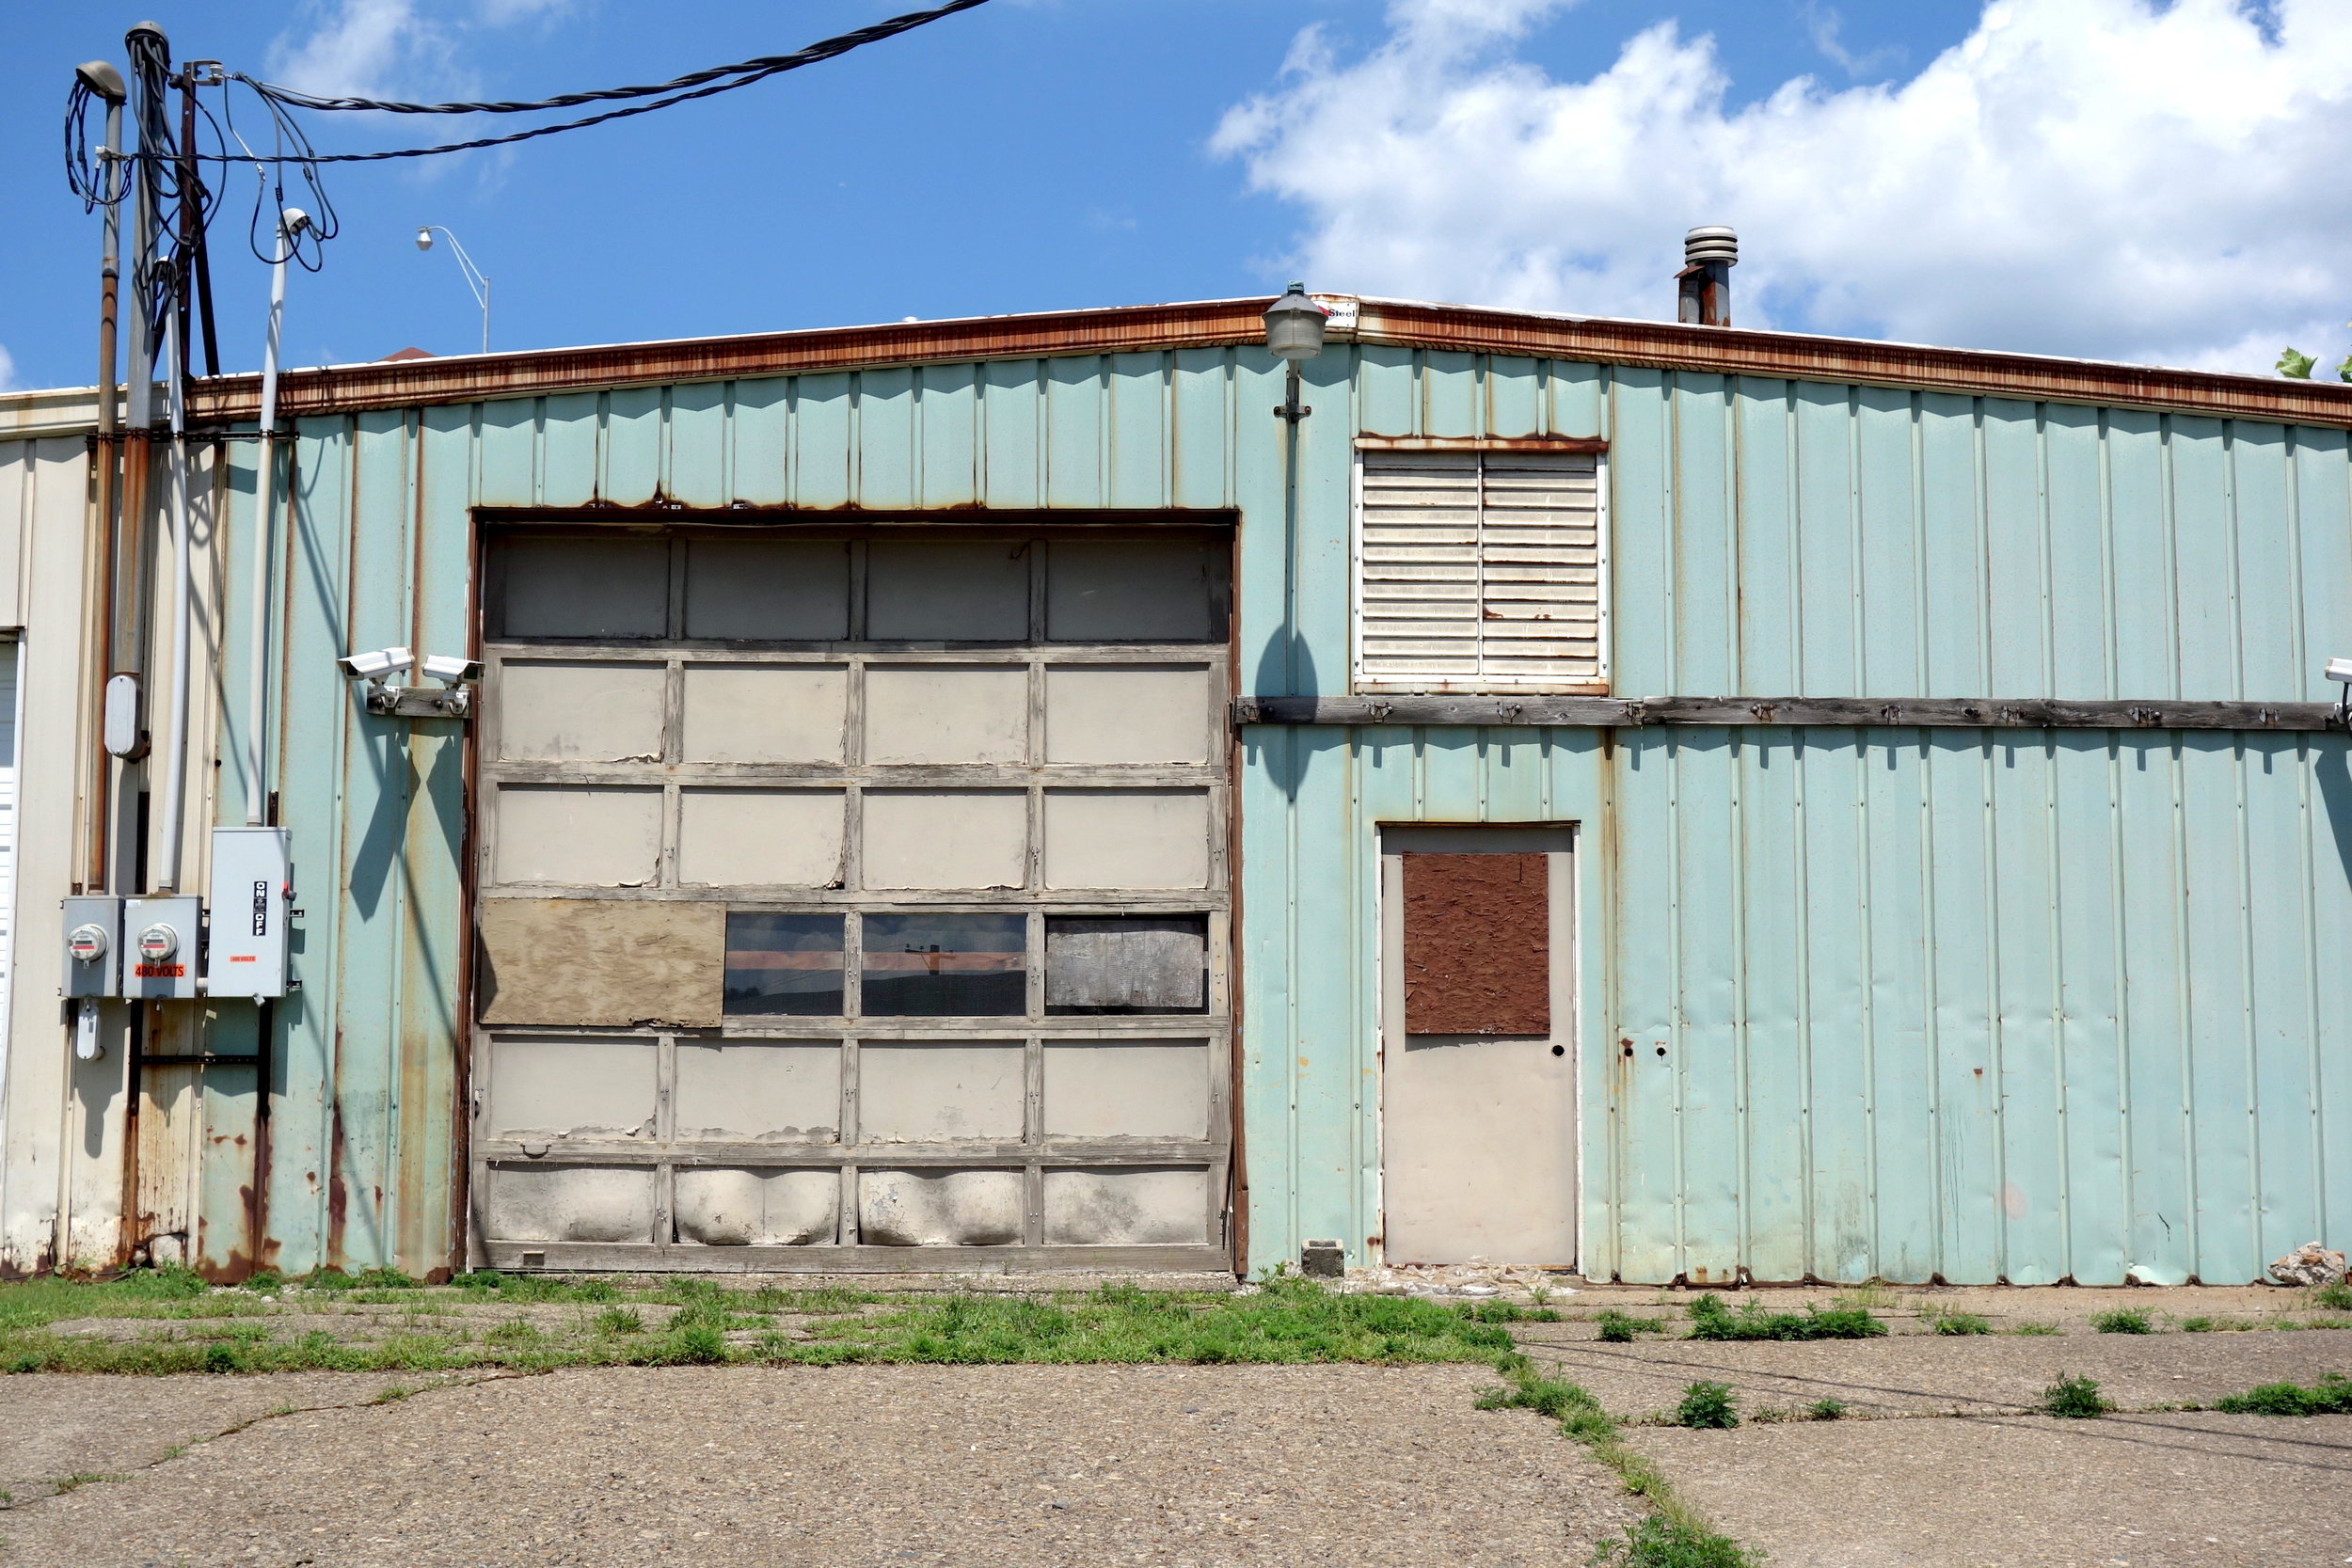 Fig. 20. Vacant workshop near the old barge port on the Ohio River, Wheeling, 2016. Photograph by Joseph Heathcott.